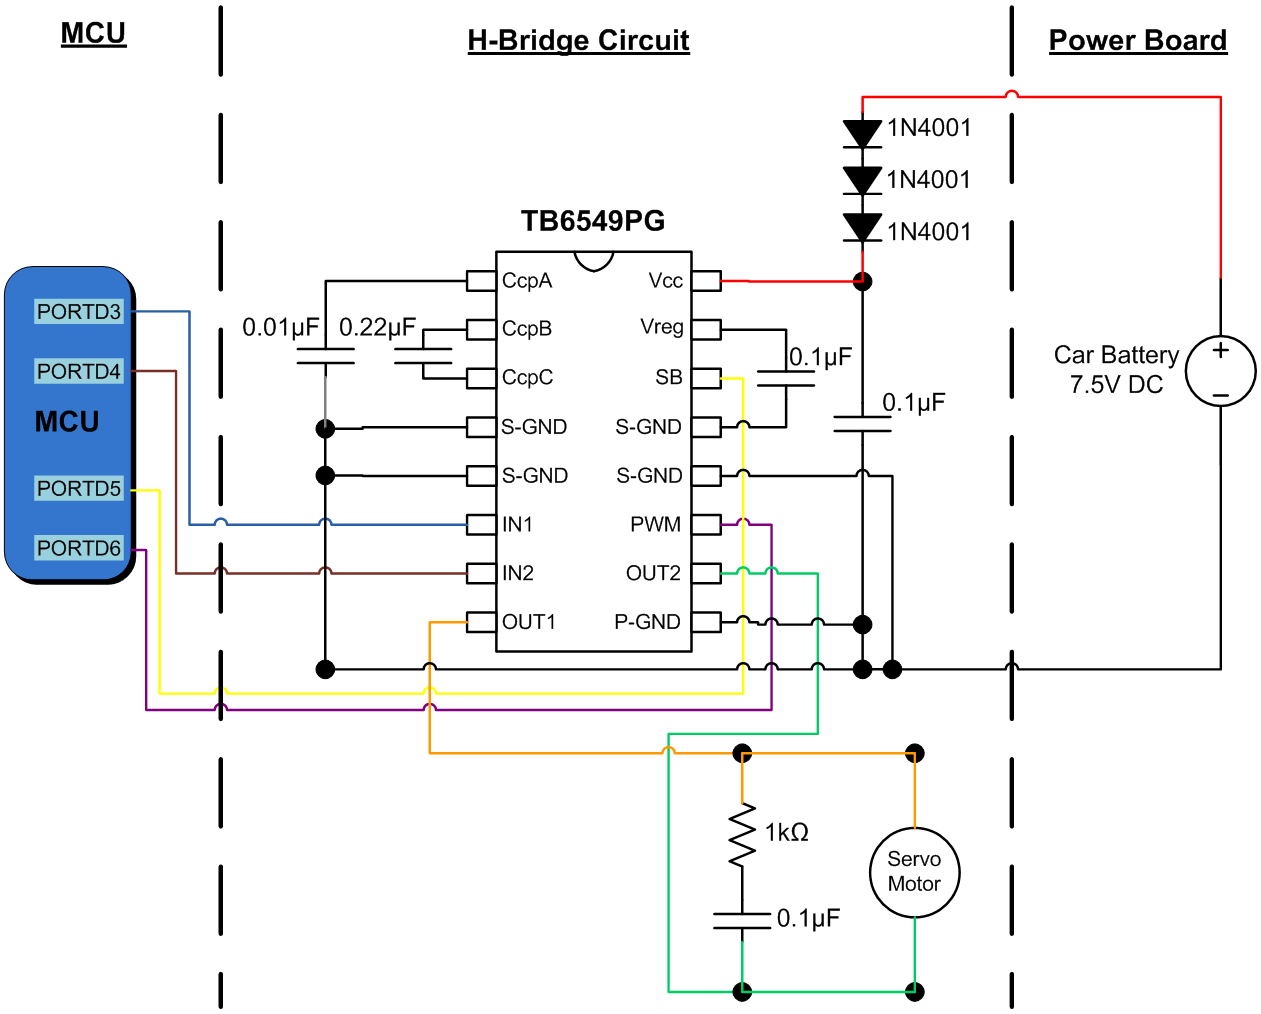 H-Bridge Circuit